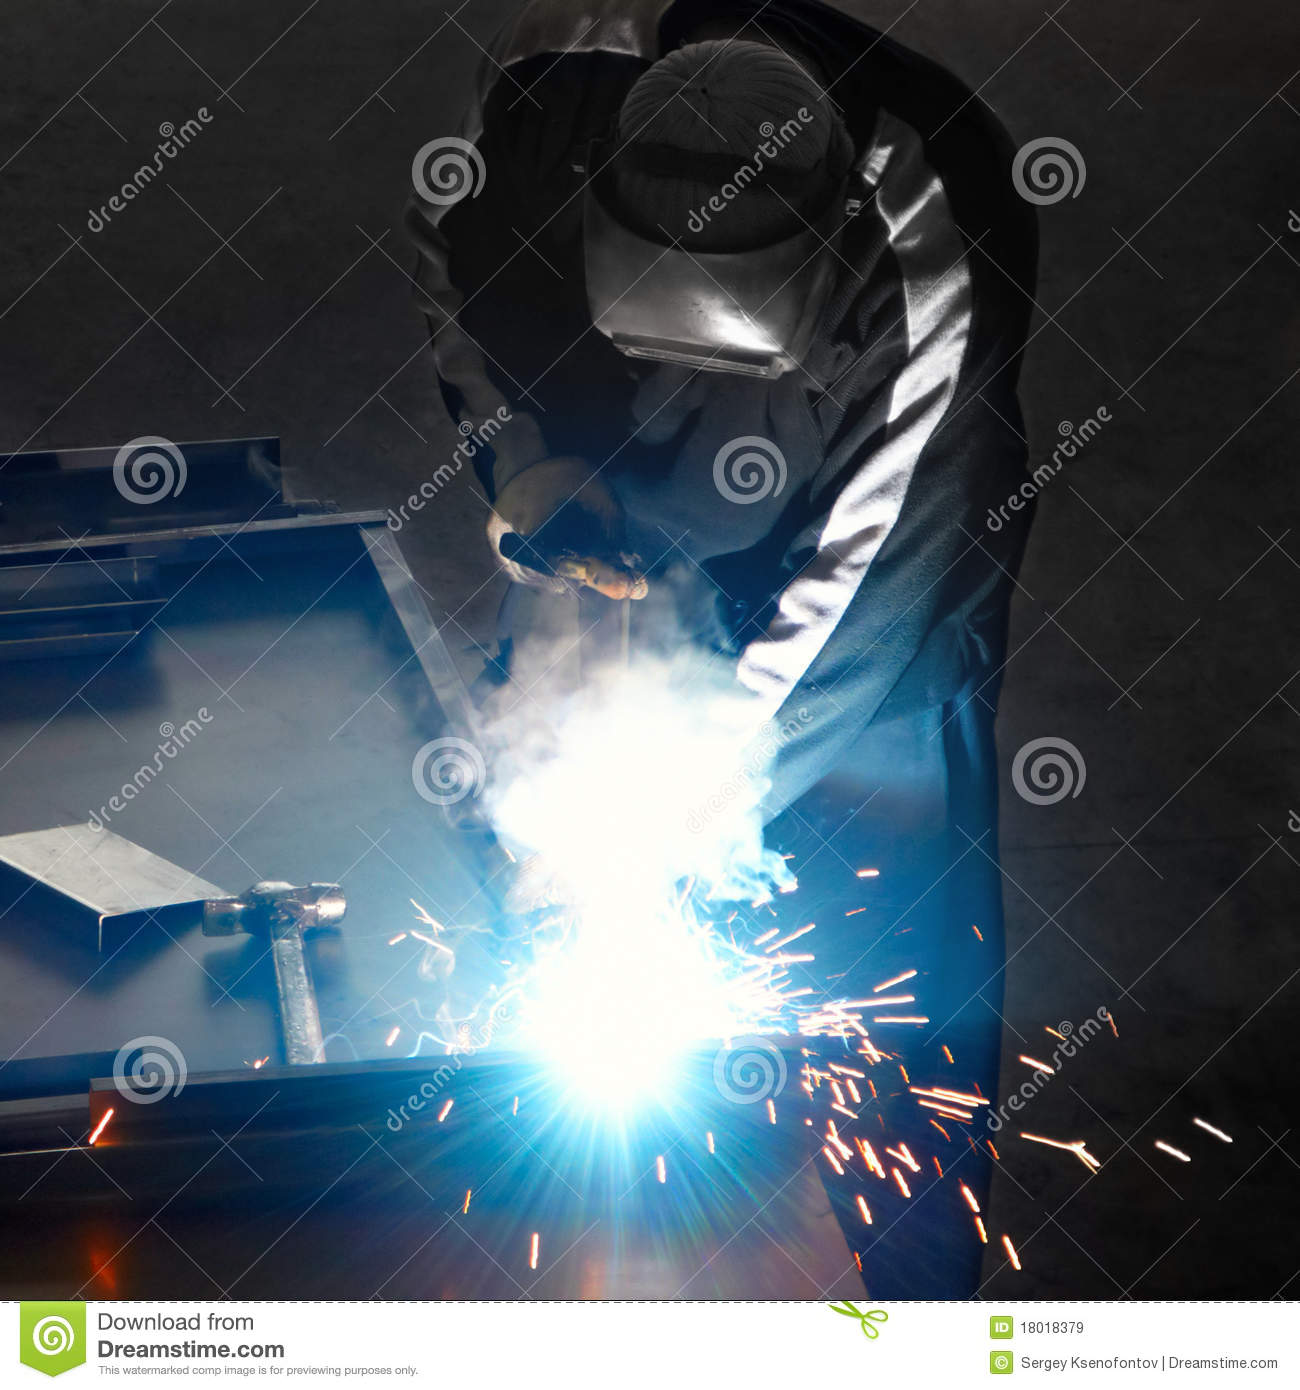 Welder With Welding Sparks Royalty Free Stock Images